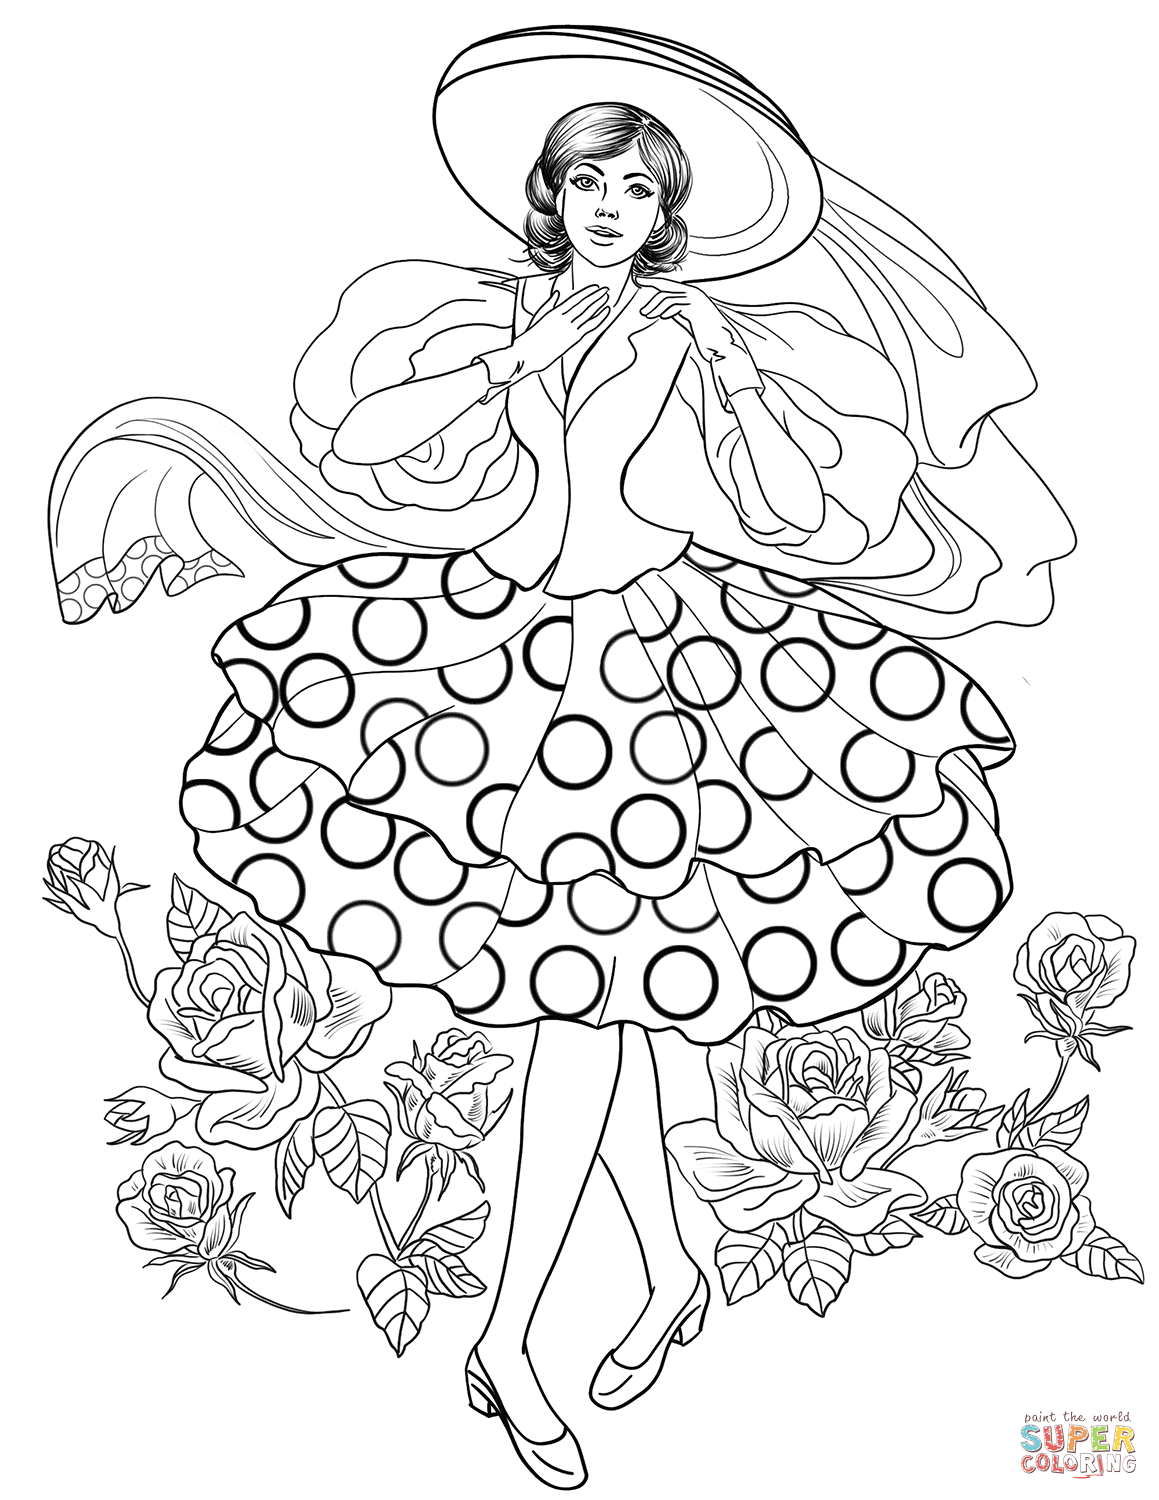 Lady From Stylish 50 S Coloring Page